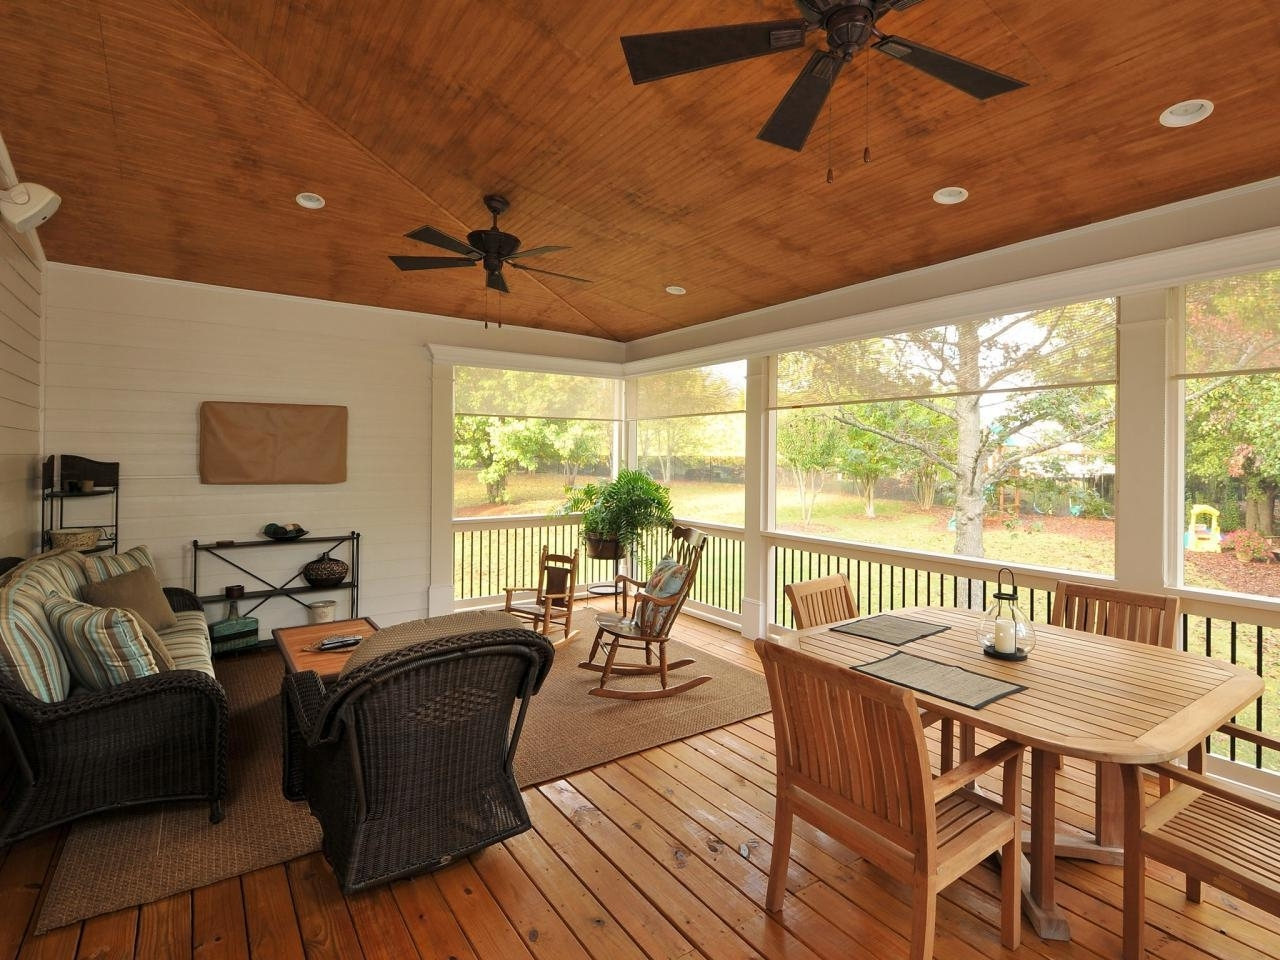 Outdoor Porch Ceiling Fans With Lights Regarding Most Recently Released Lighting Your Lovely Outdoor Porch Ceiling Fans With (View 16 of 20)